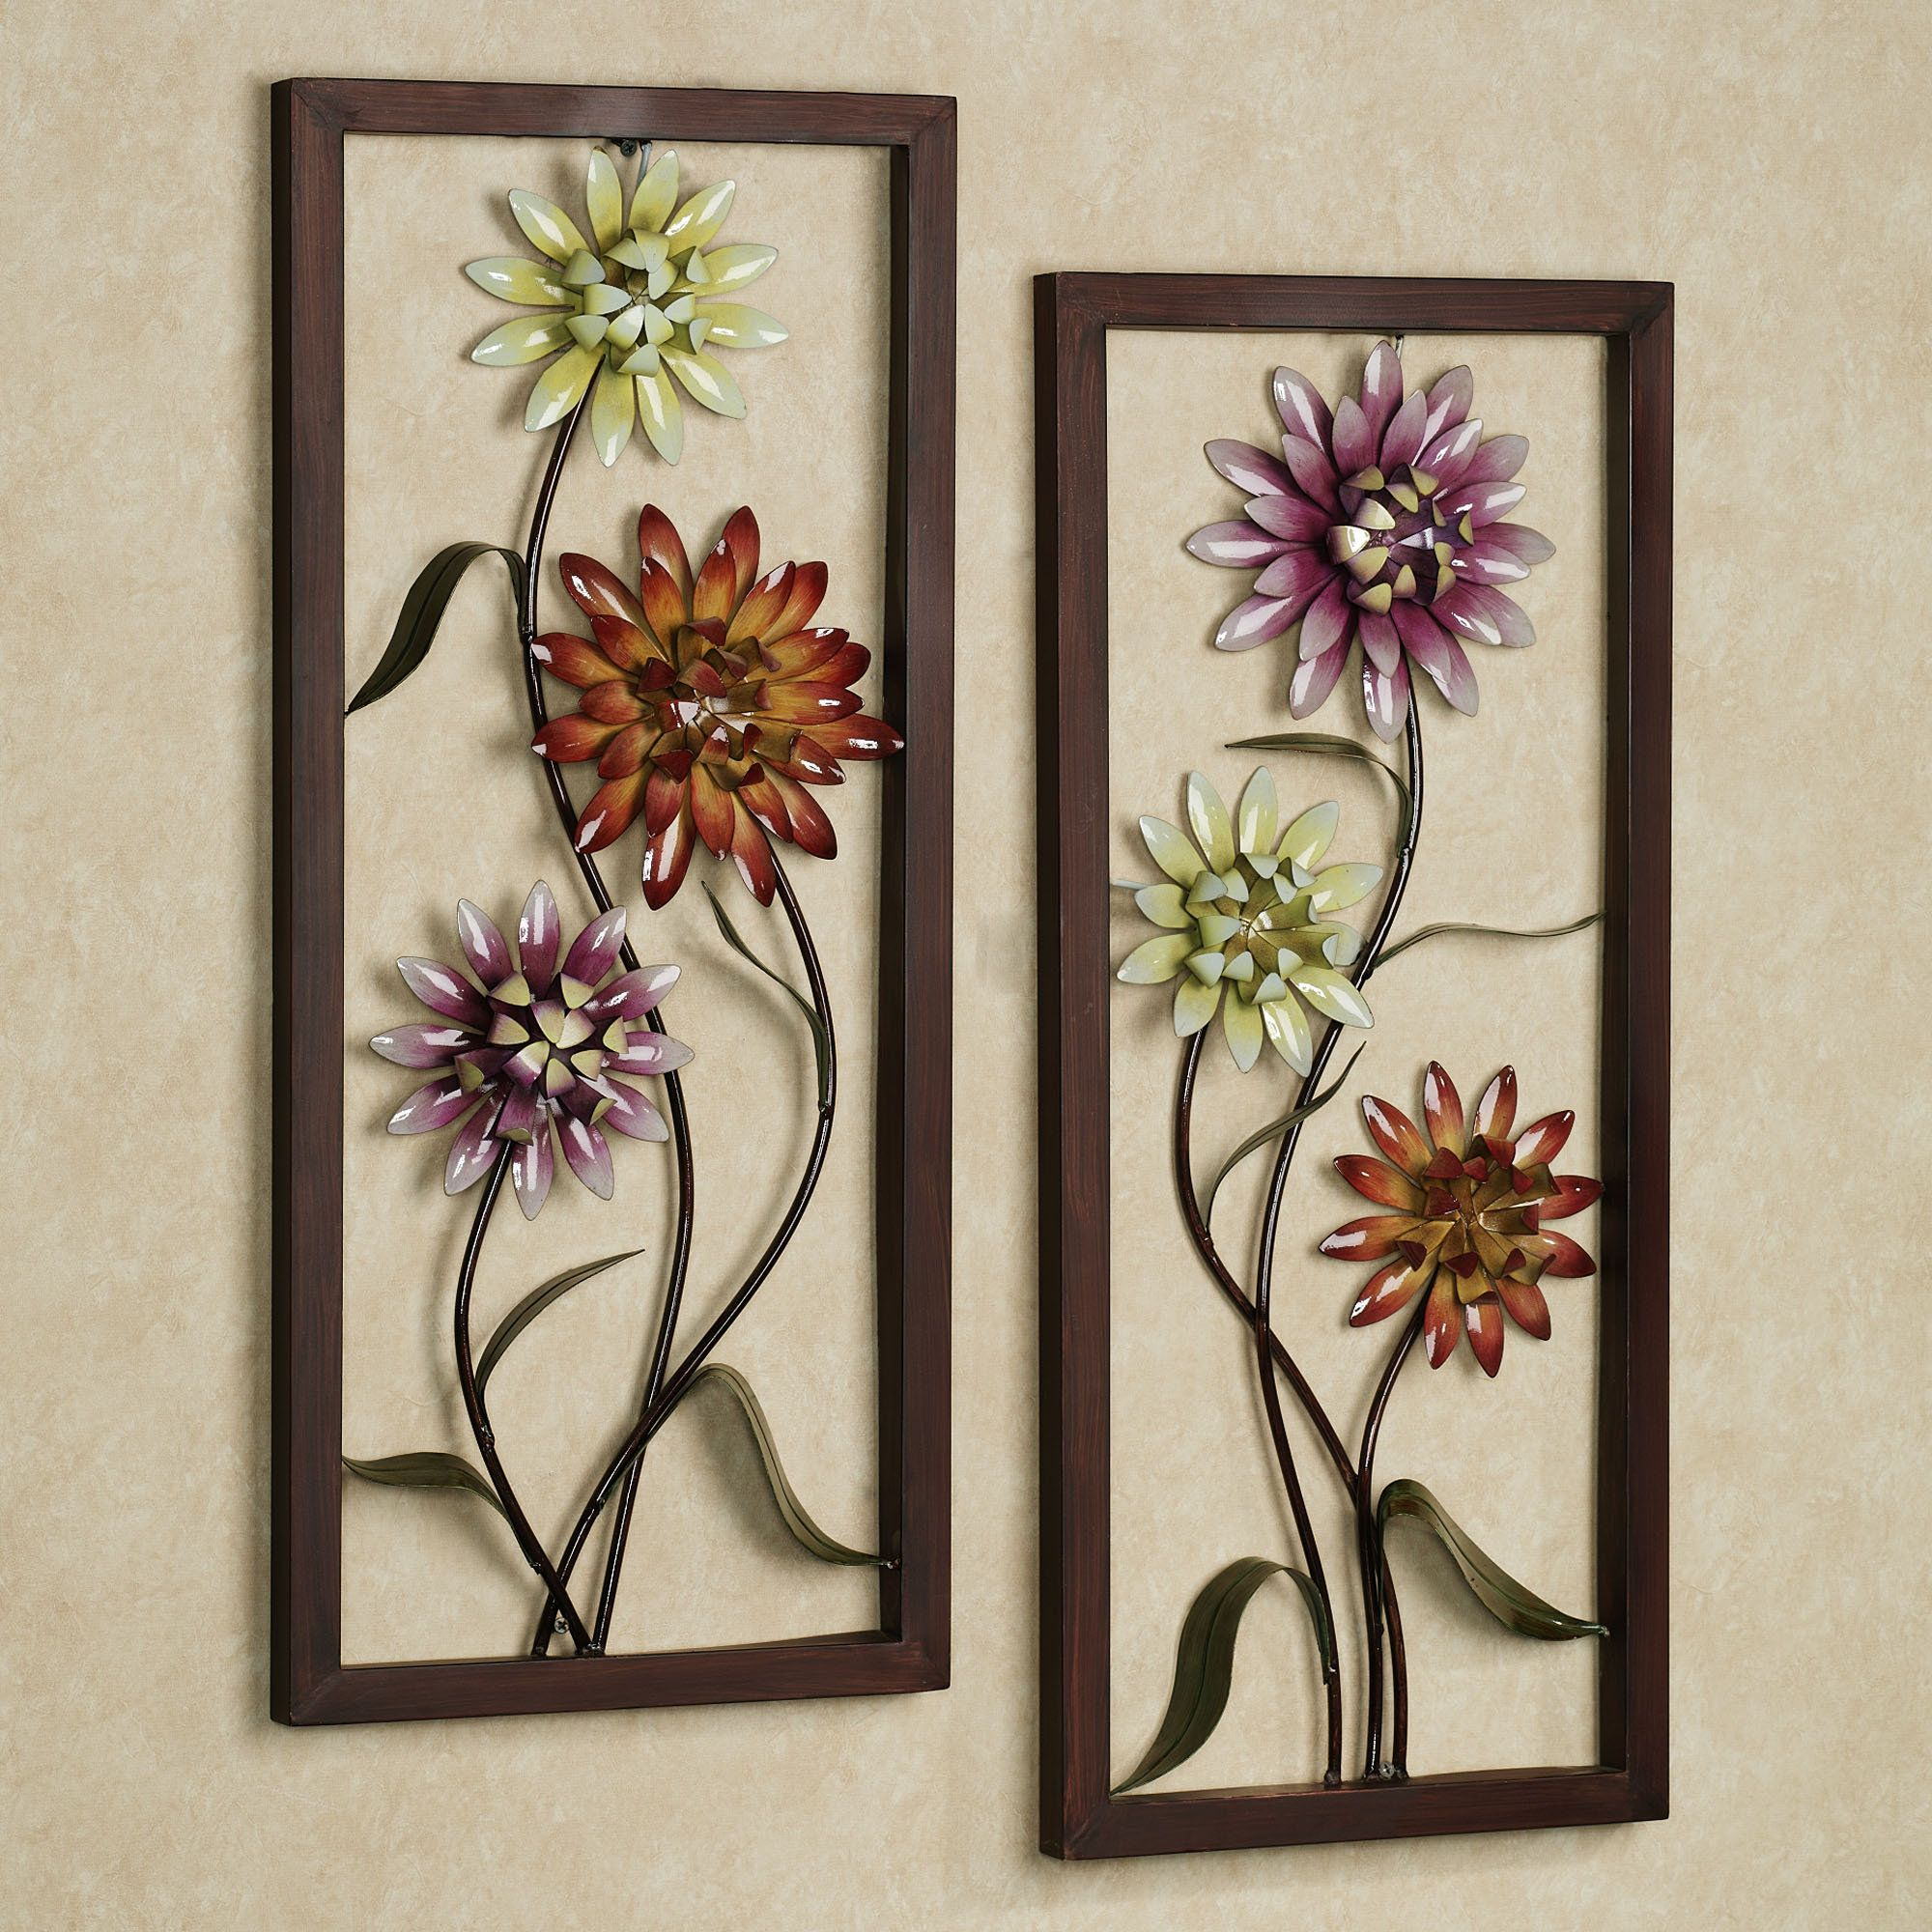 latest posts under bathroom art - Wall Decorations